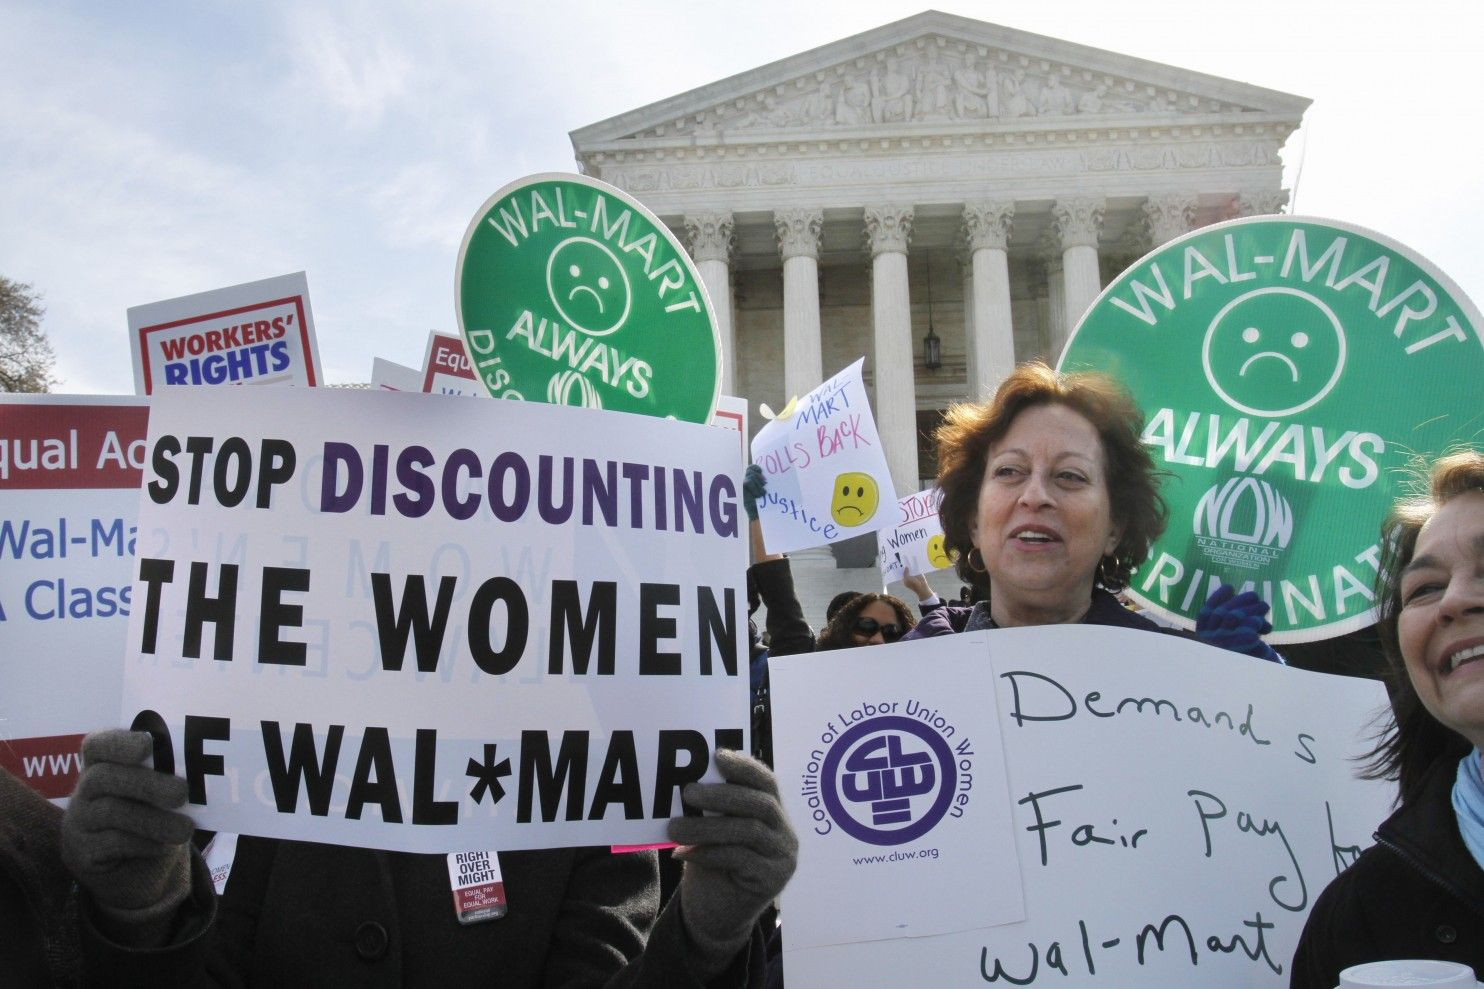 10. Walmart Discriminates Against Women